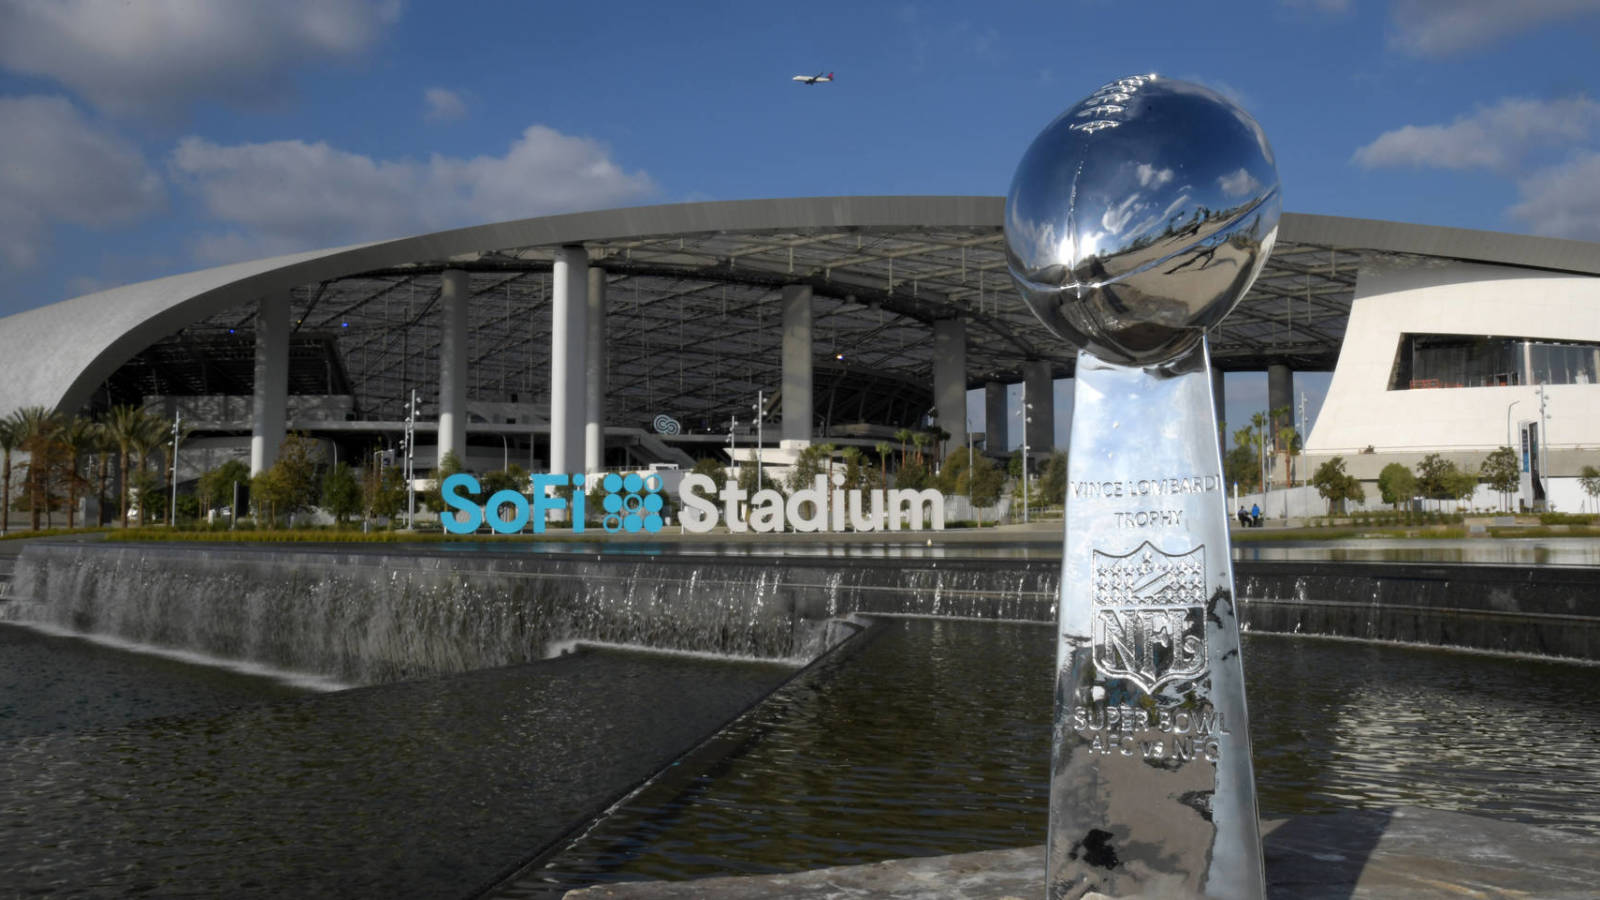 Nfl-offering-free-super-bowl-tickets-vaccinated